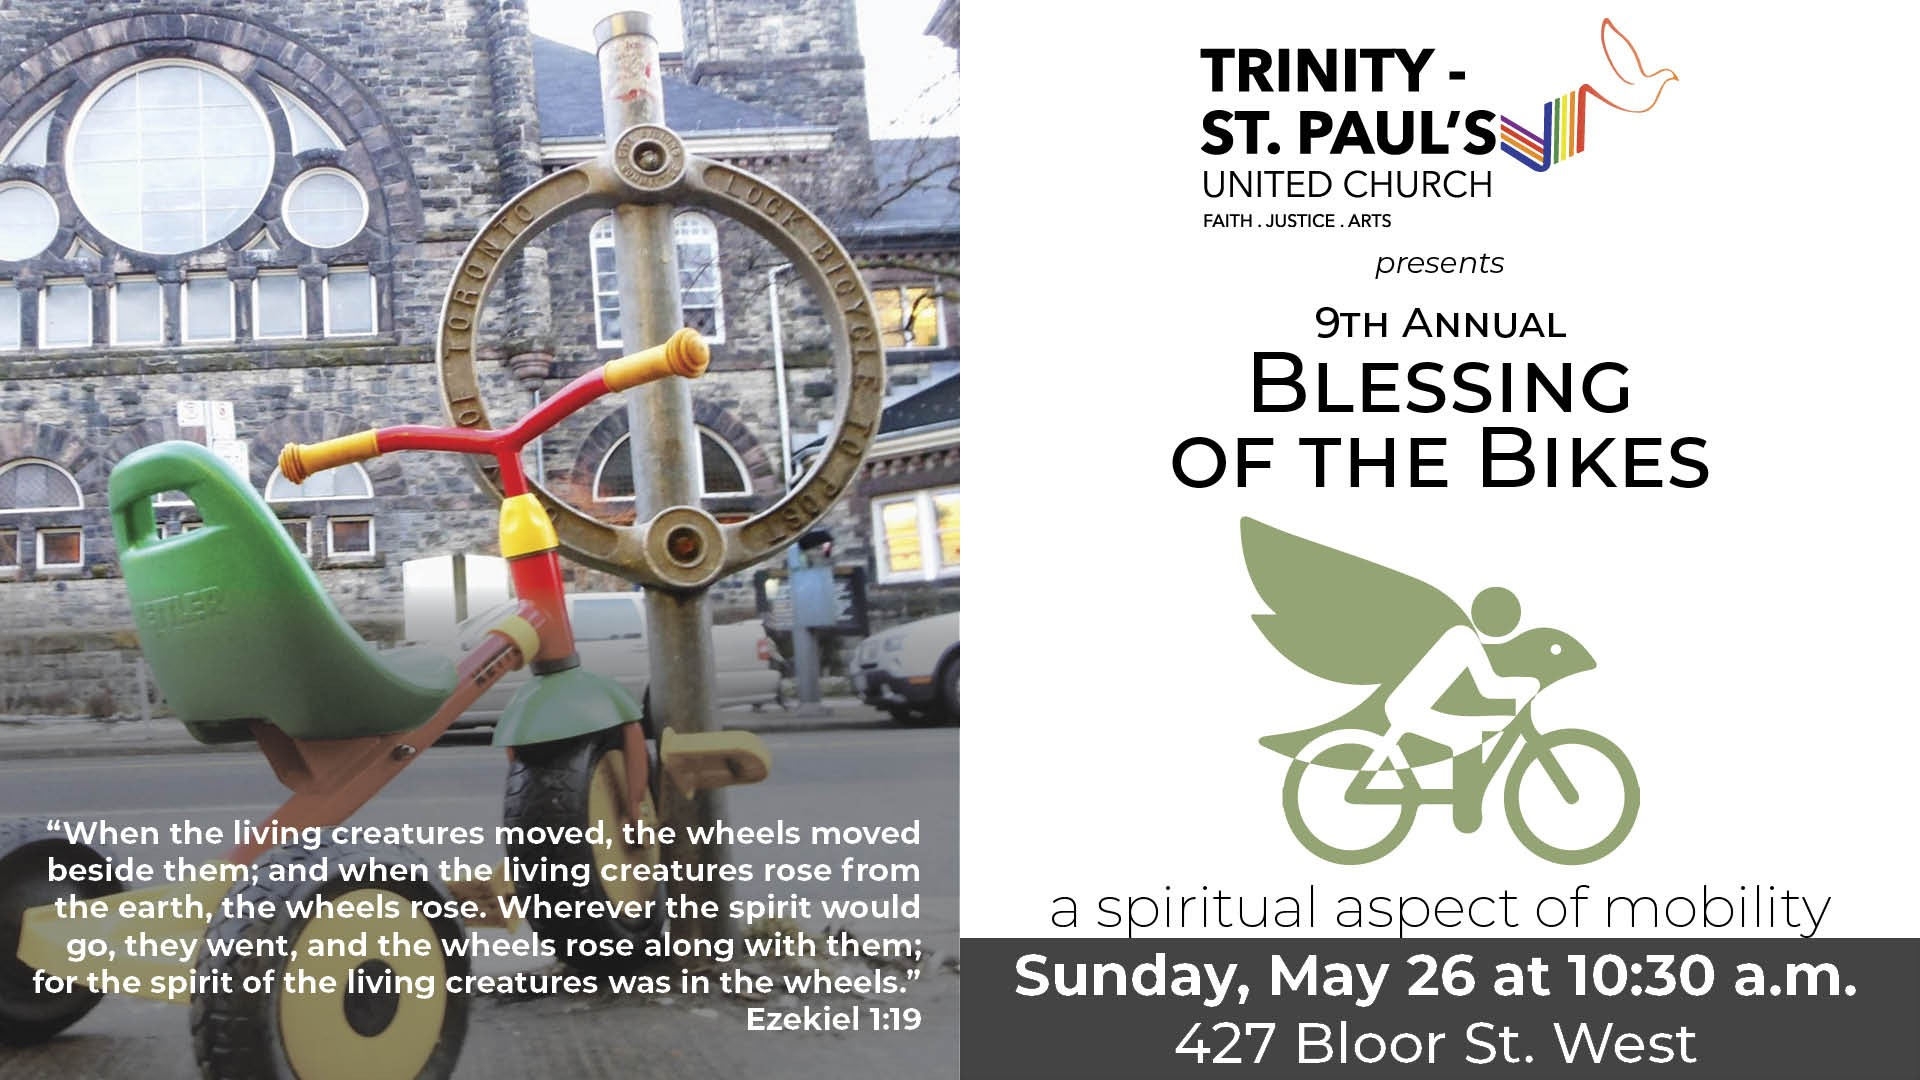 bikeblessing_web2019